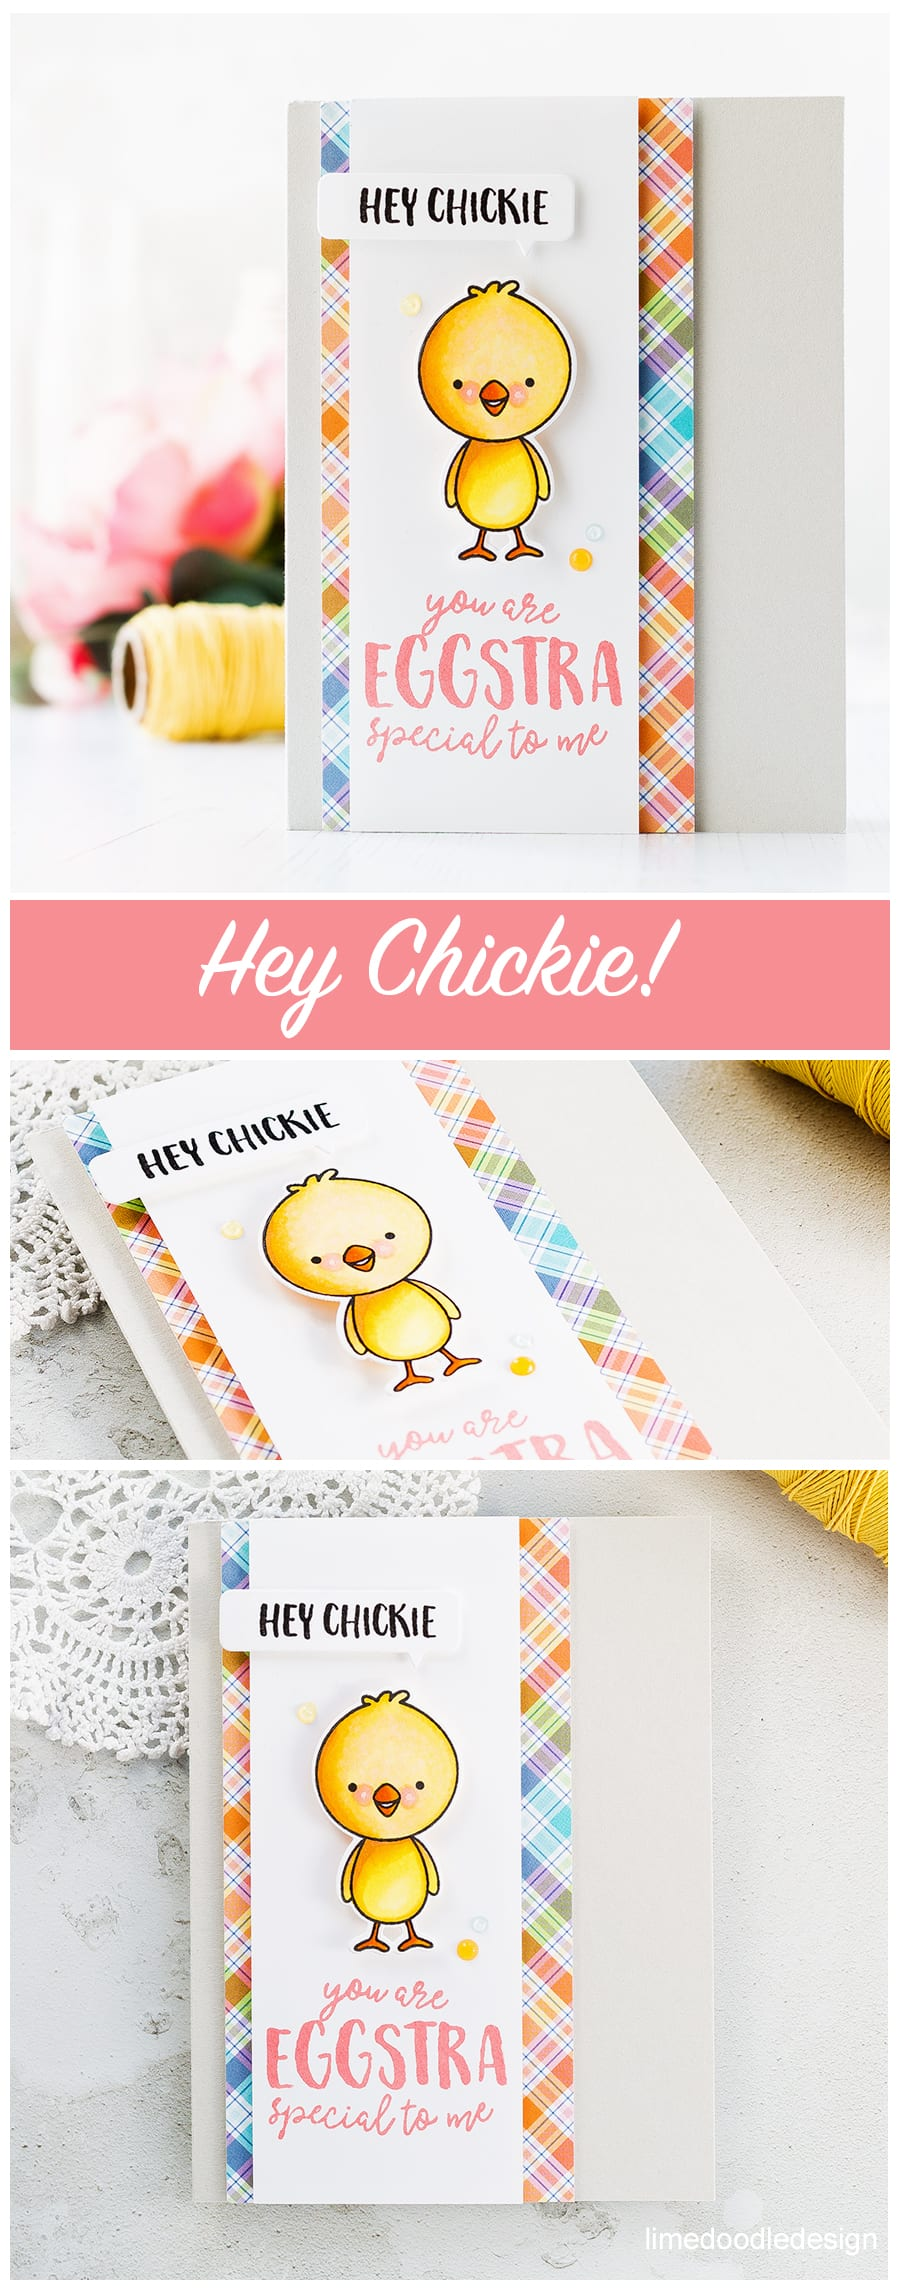 Eggstra Special card by Debby Hughes. Find out more about this Easter chick card by clicking on the following link: http://limedoodledesign.com/2017/04/eggstra-special/